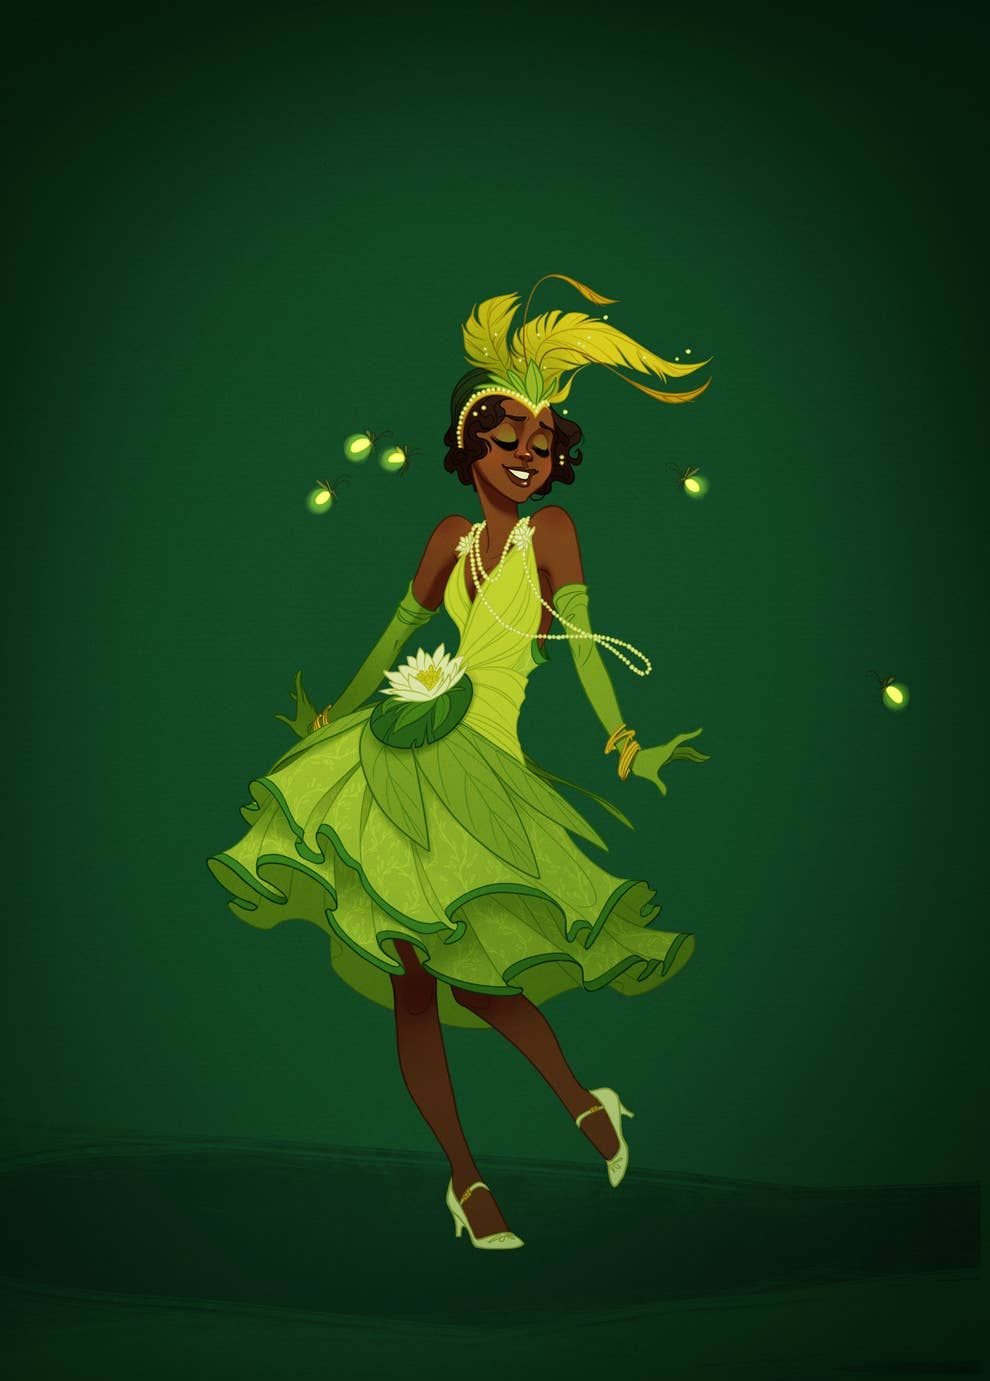 26 Historically Accurate Drawings Of Disney Princesses Worth Looking At -   7 dress Princess draw ideas